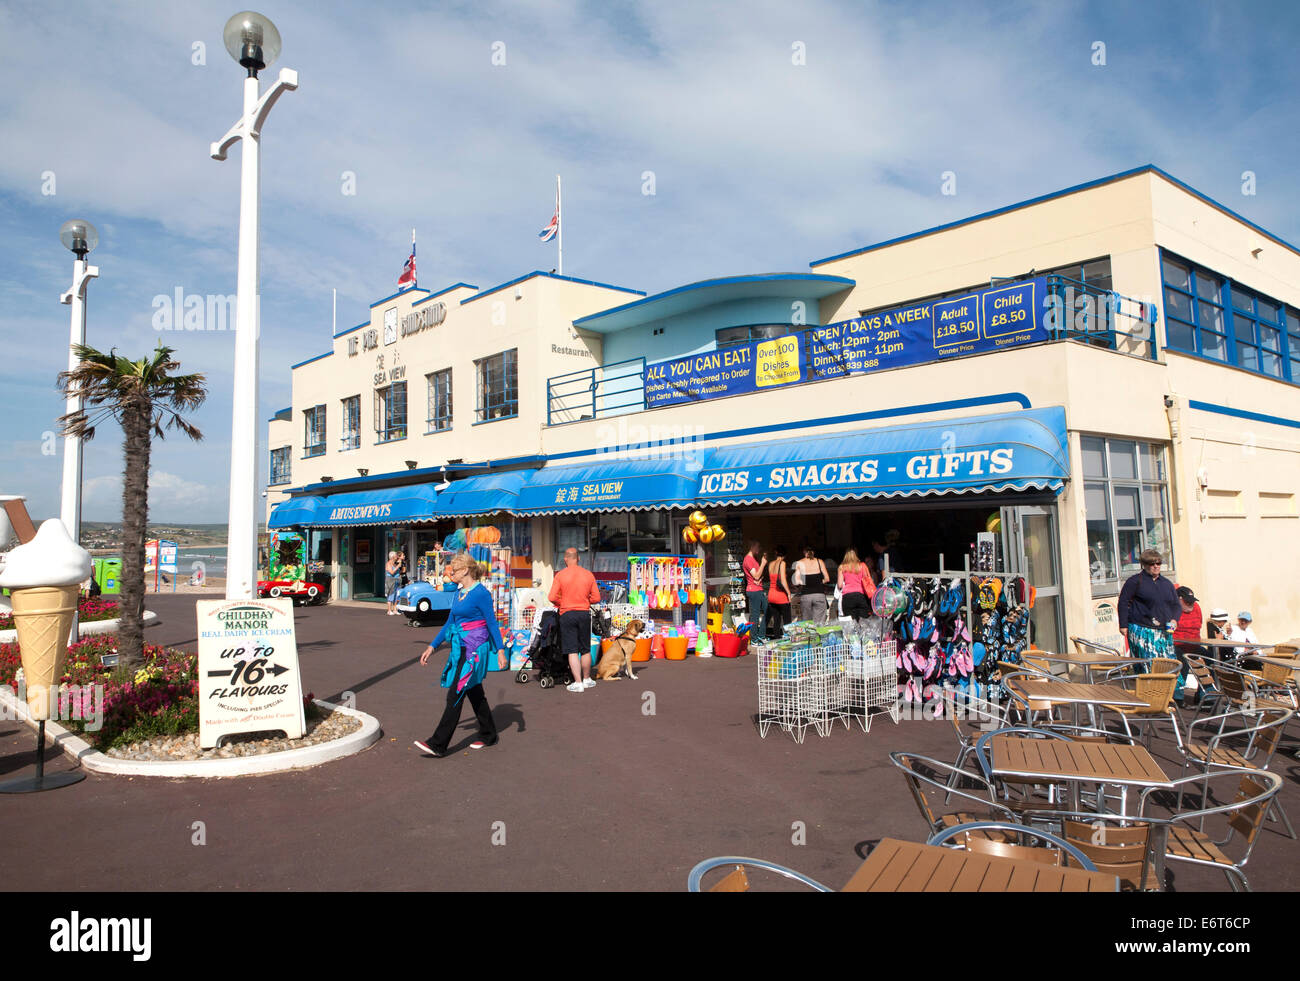 The Pier Bandstand amusements on the seafront at Weymouth, Dorset, England - Stock Image